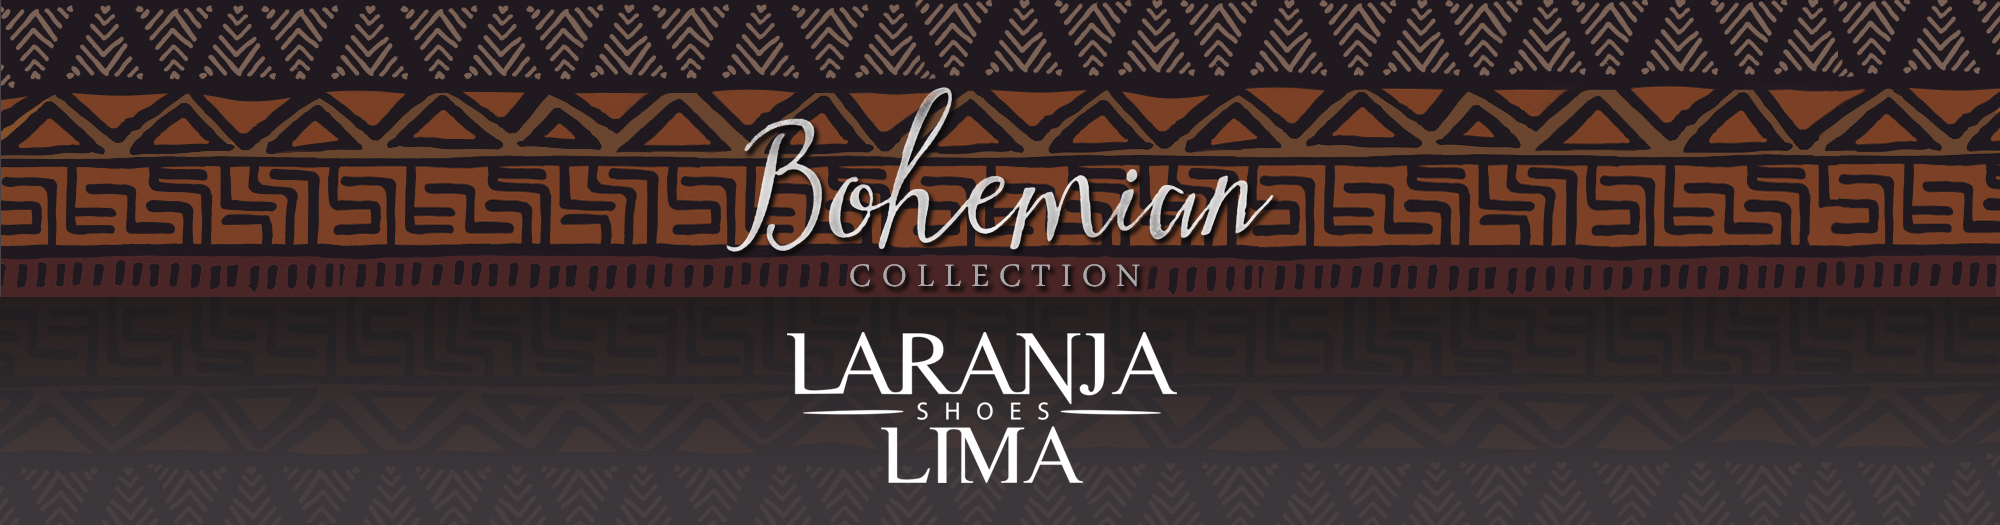 Bohemian Collection official